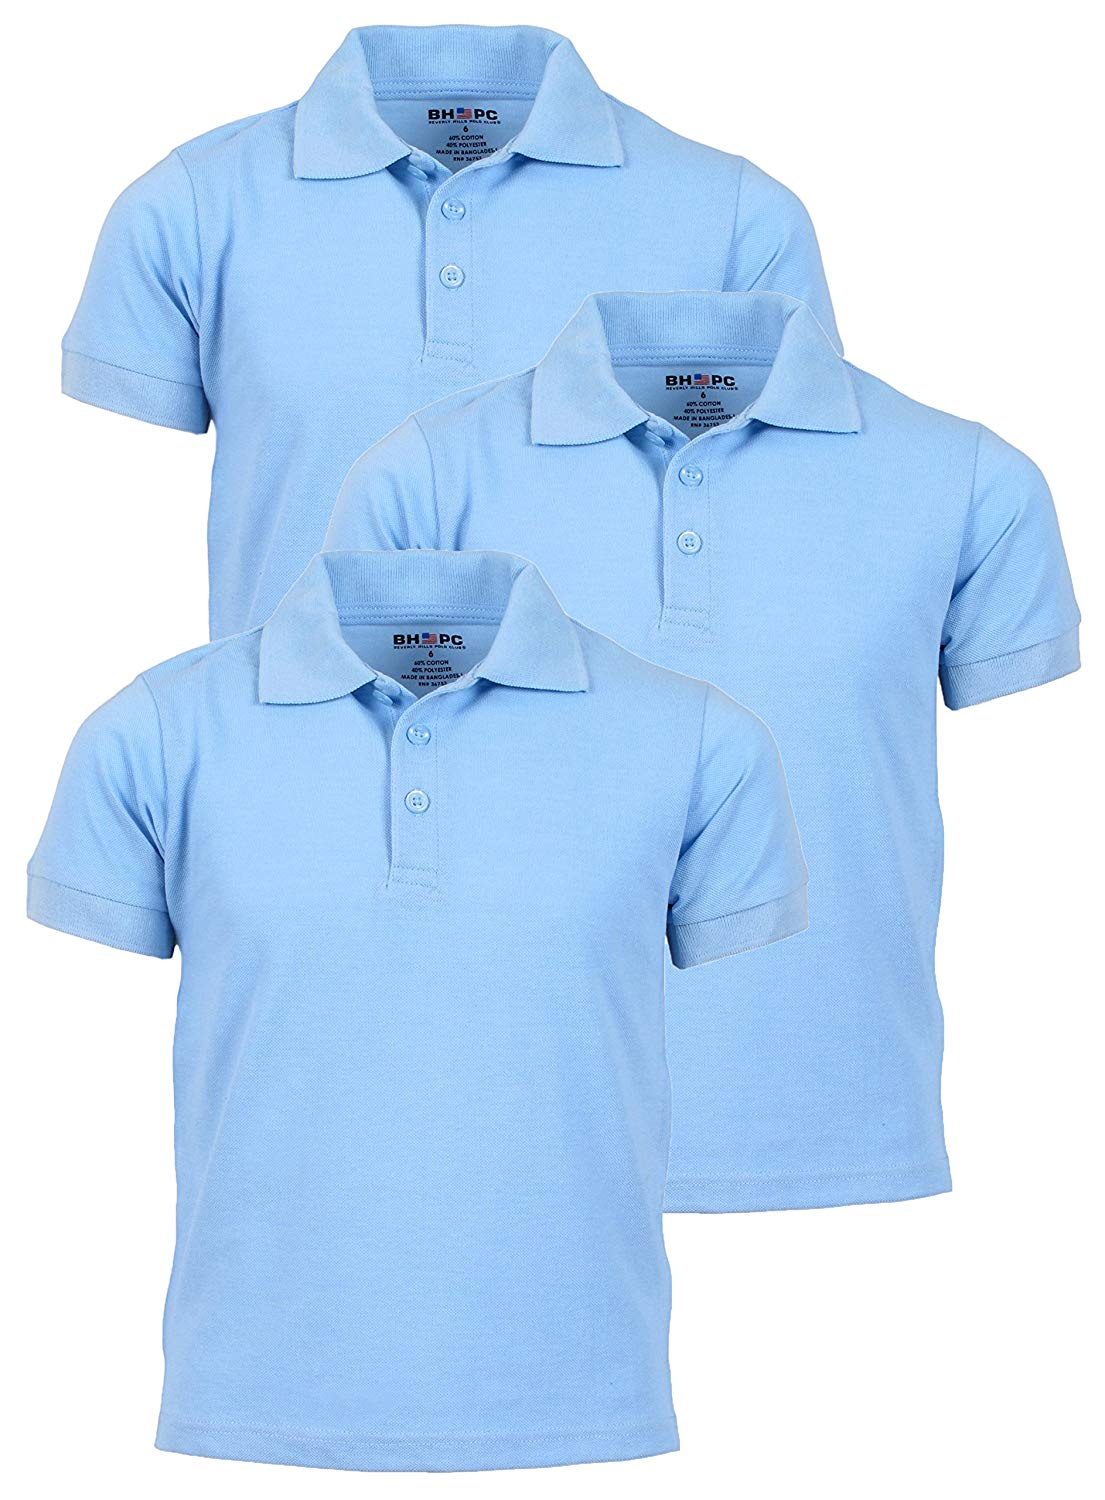 df2953025 Beverly Hills Polo Club Pique Polo Uniform Short Sleeve Shirts - Boys 3PK